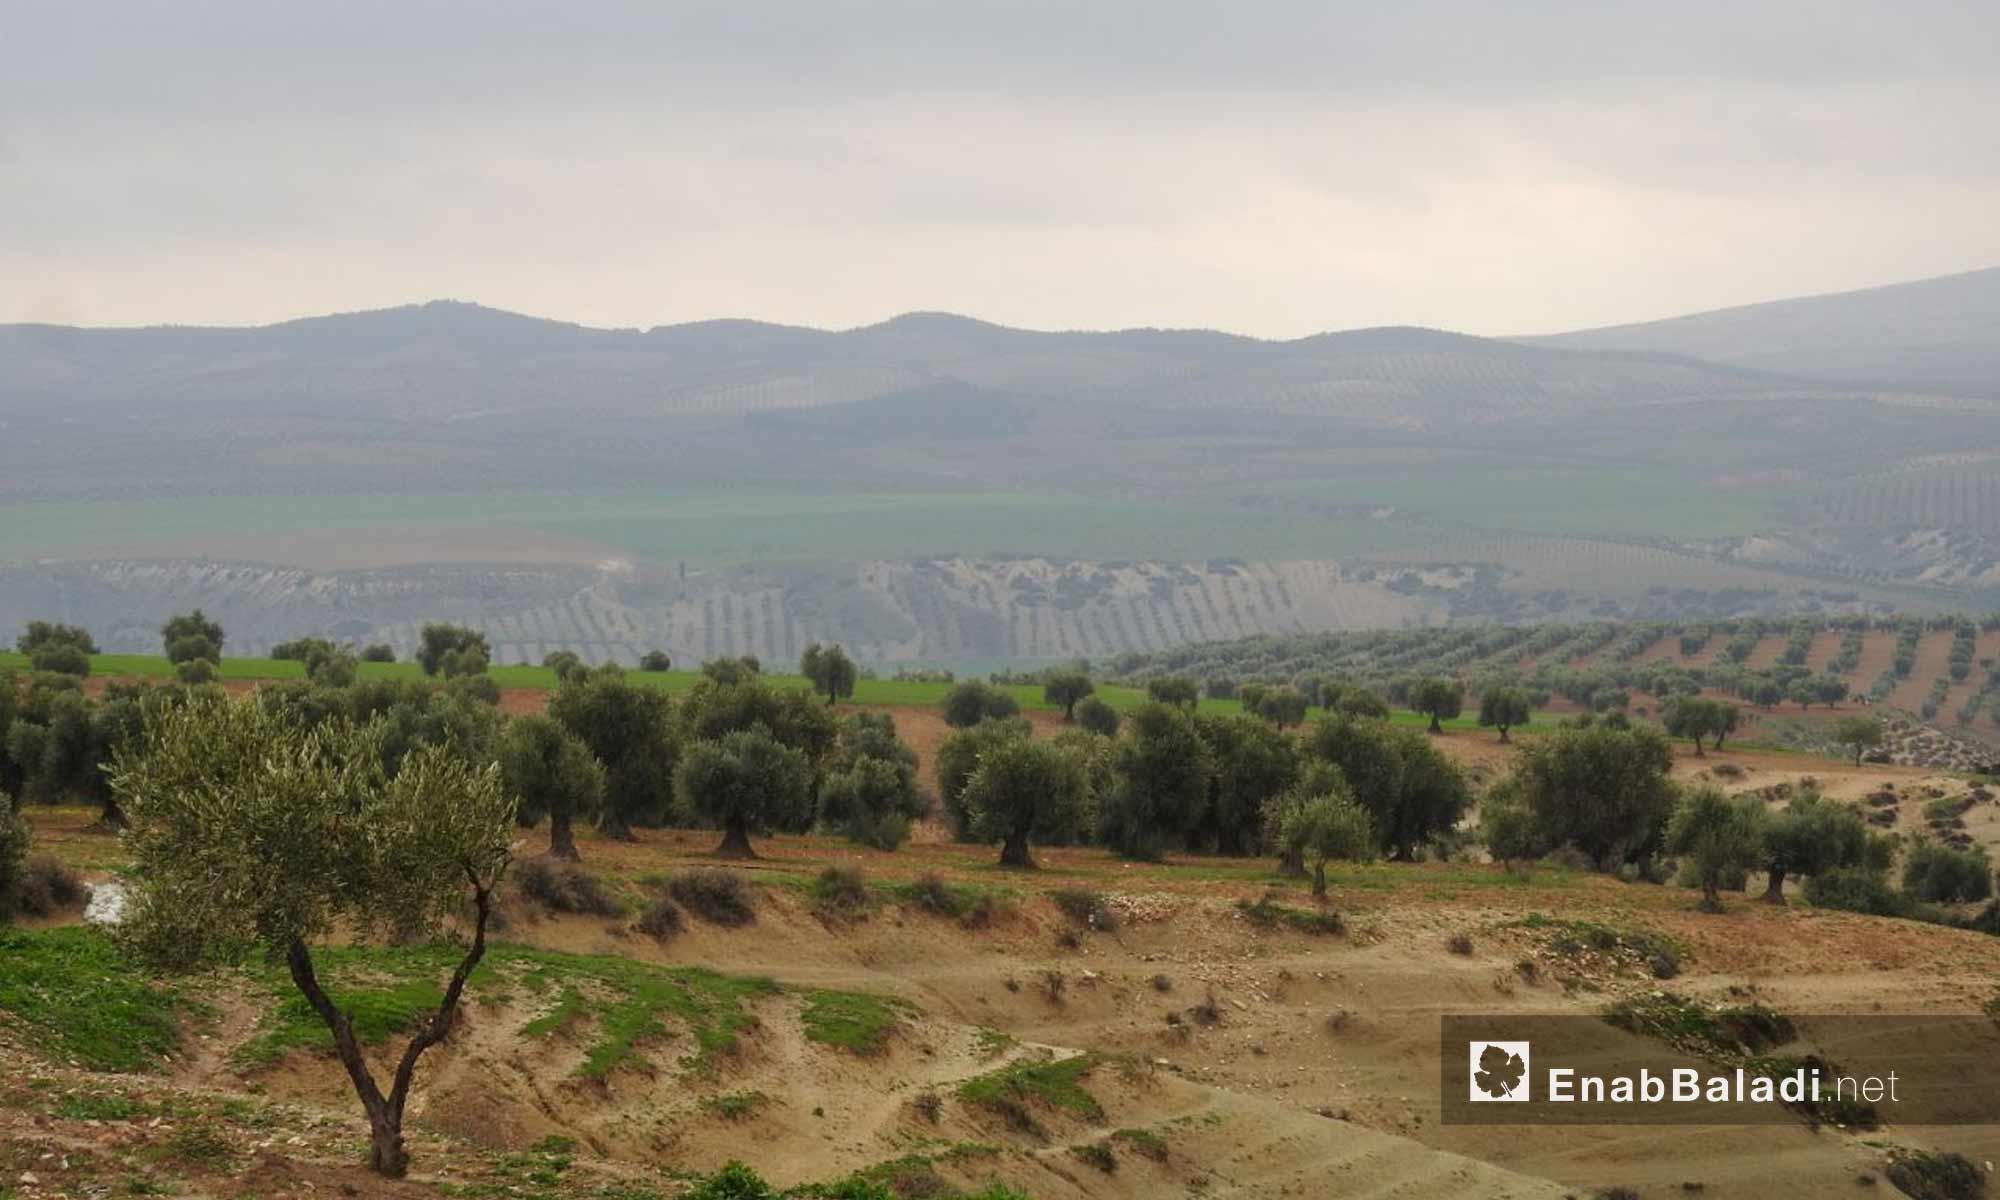 Vast areas of olive trees in Afrin countryside - 02 March 2018 (Enab Baladi)